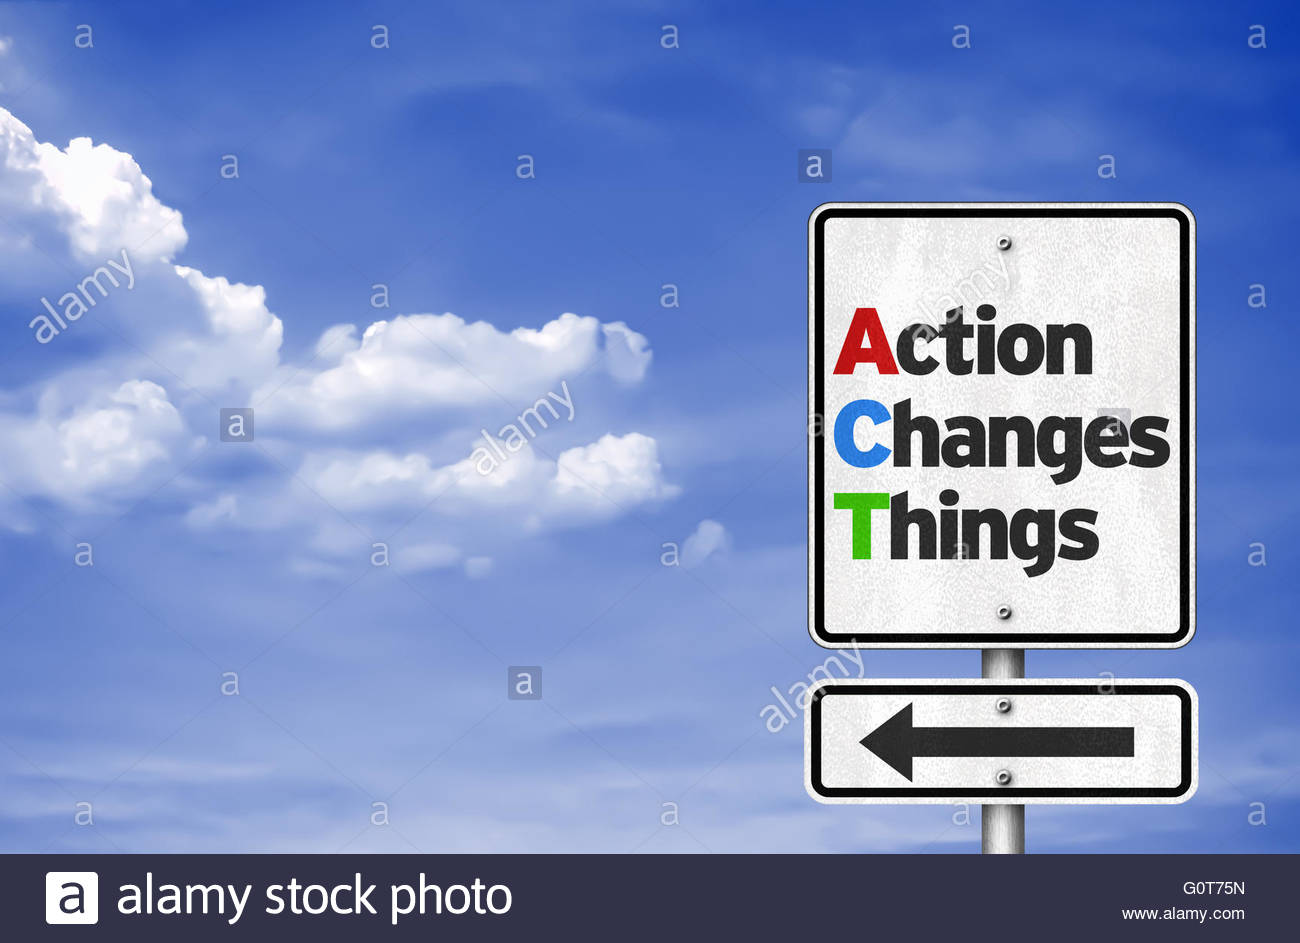 Action Changes Things - road sign concept - Stock Image